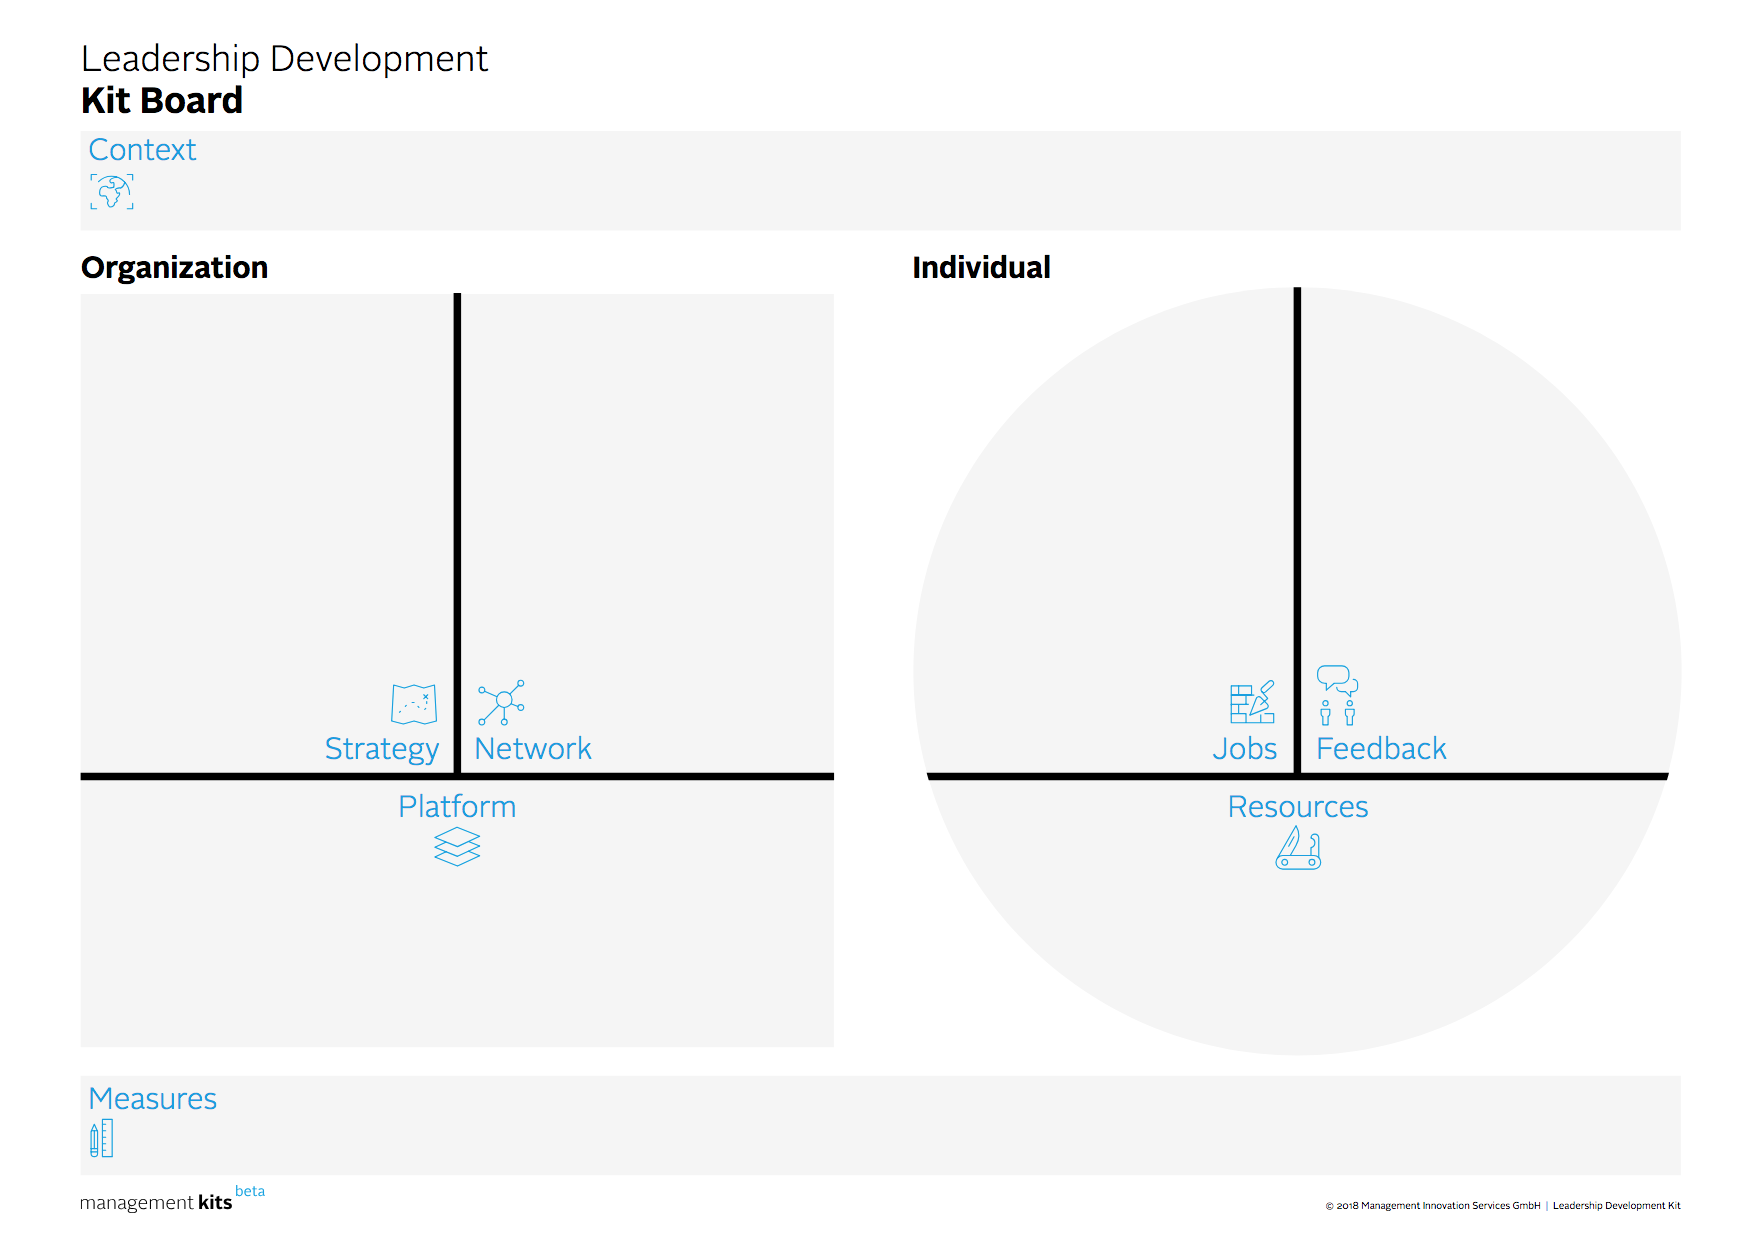 Leadership Development Canvas (Management Kits)